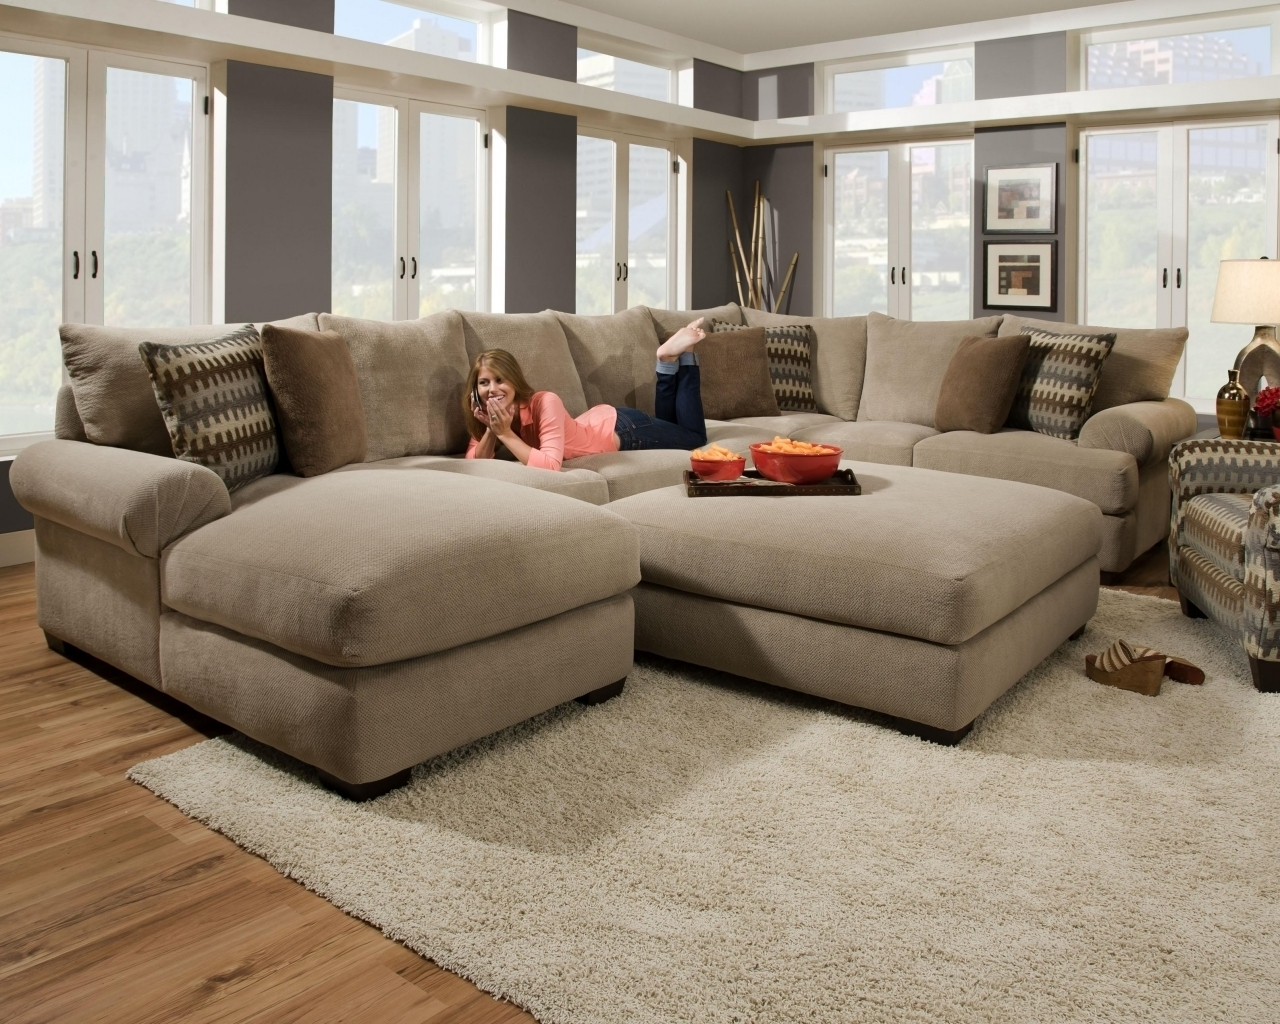 Newest Amazing Sectional Sofa With Oversized Ottoman 59 For Your Best In Sectional Sofas With Oversized Ottoman (View 4 of 20)